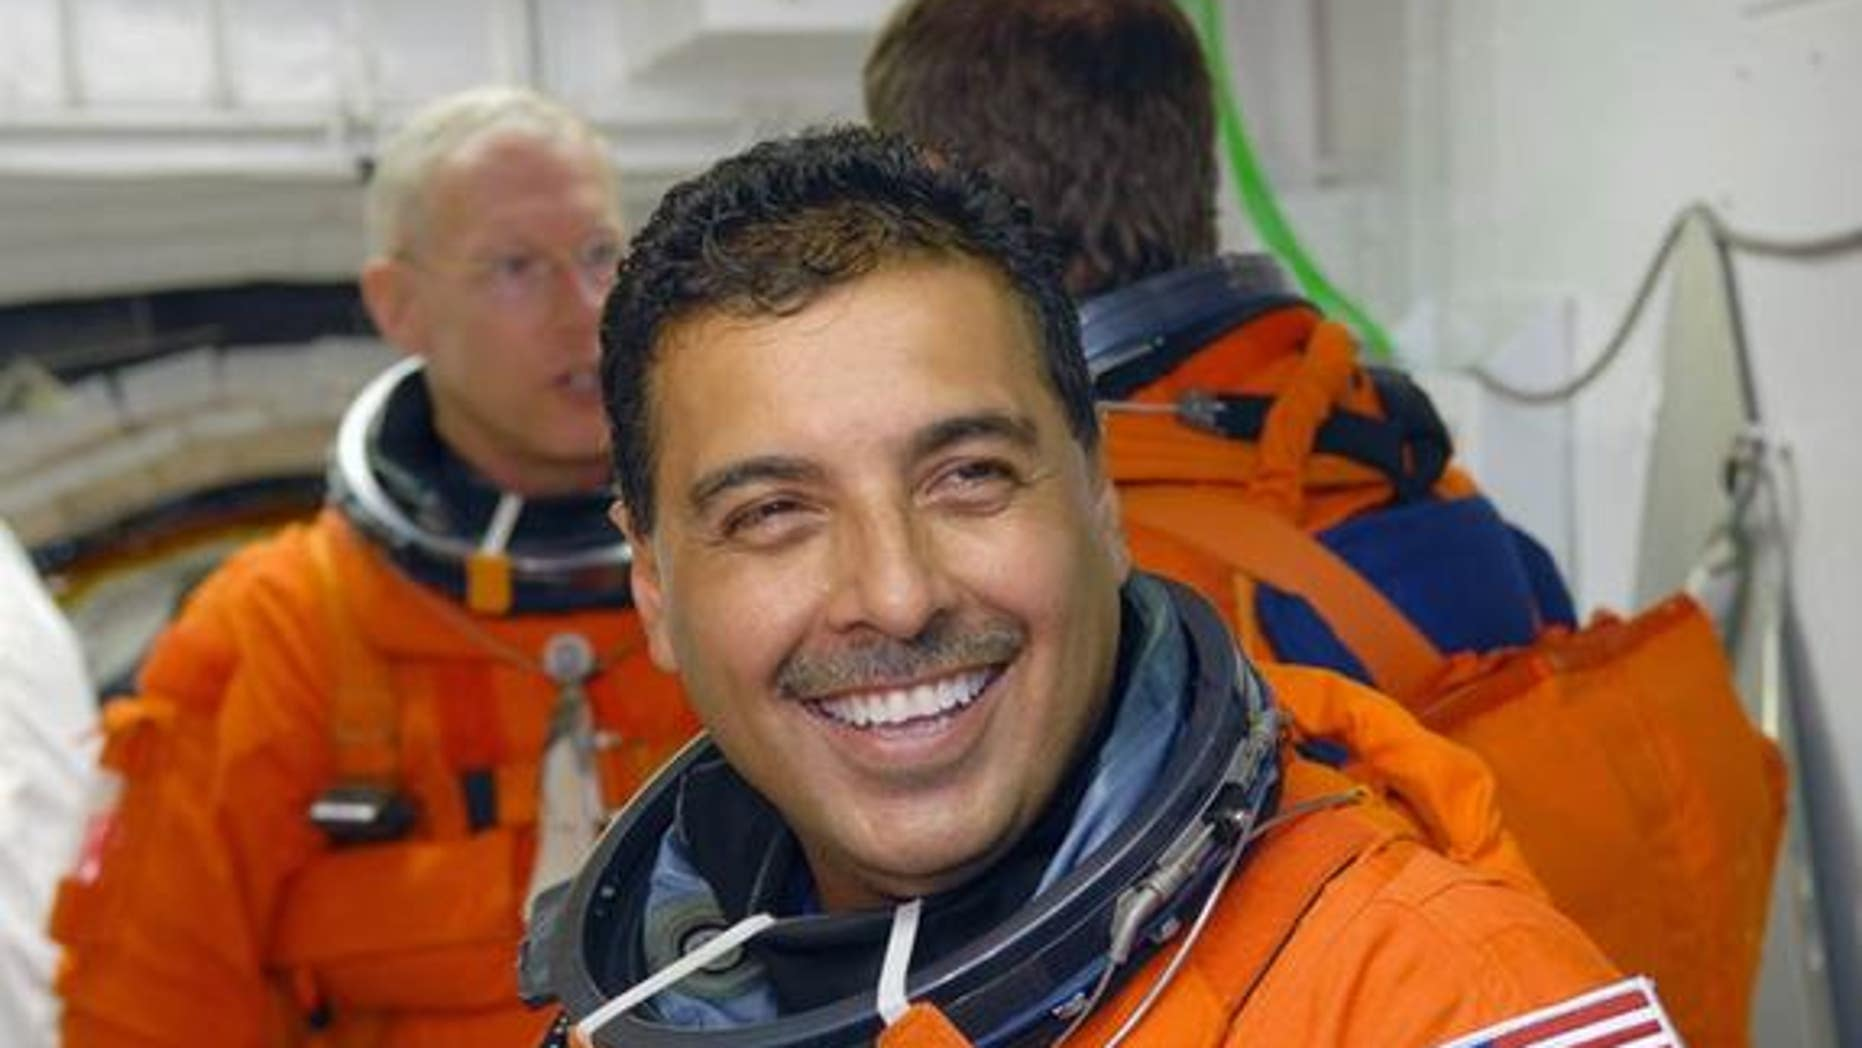 In the White Room on NASA Kennedy Space Center's Launch Pad 39A, STS-128 Mission Specialist Jose Hernandez - a former migrant farmer from Stockton, Calif. - waits his turn to enter space shuttle Discovery during a launch rehearsal for his Aug.